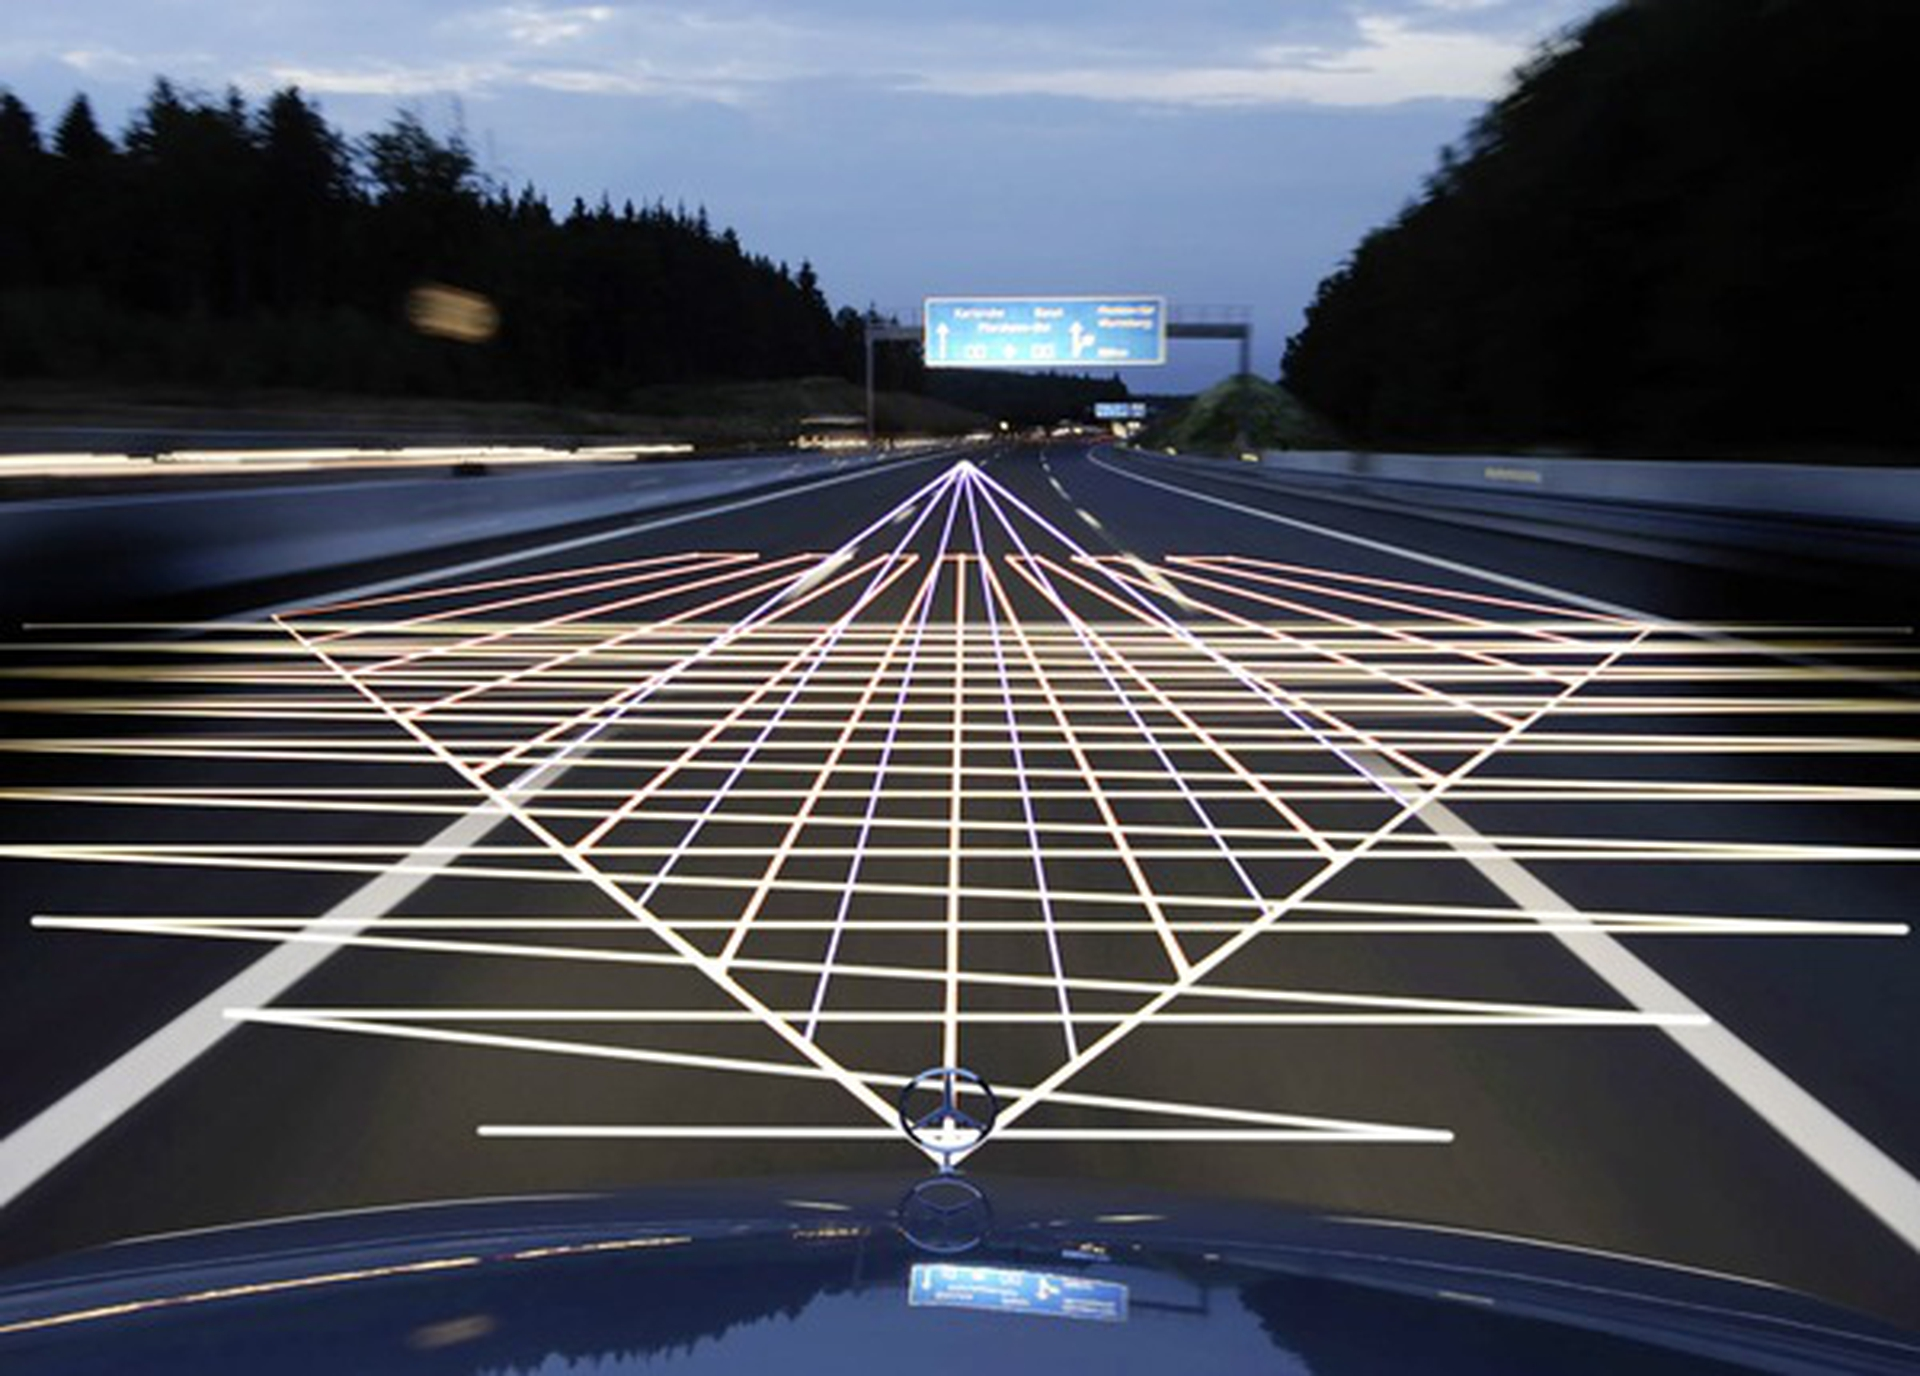 Scanning The Road - Defensive Driving Techniques